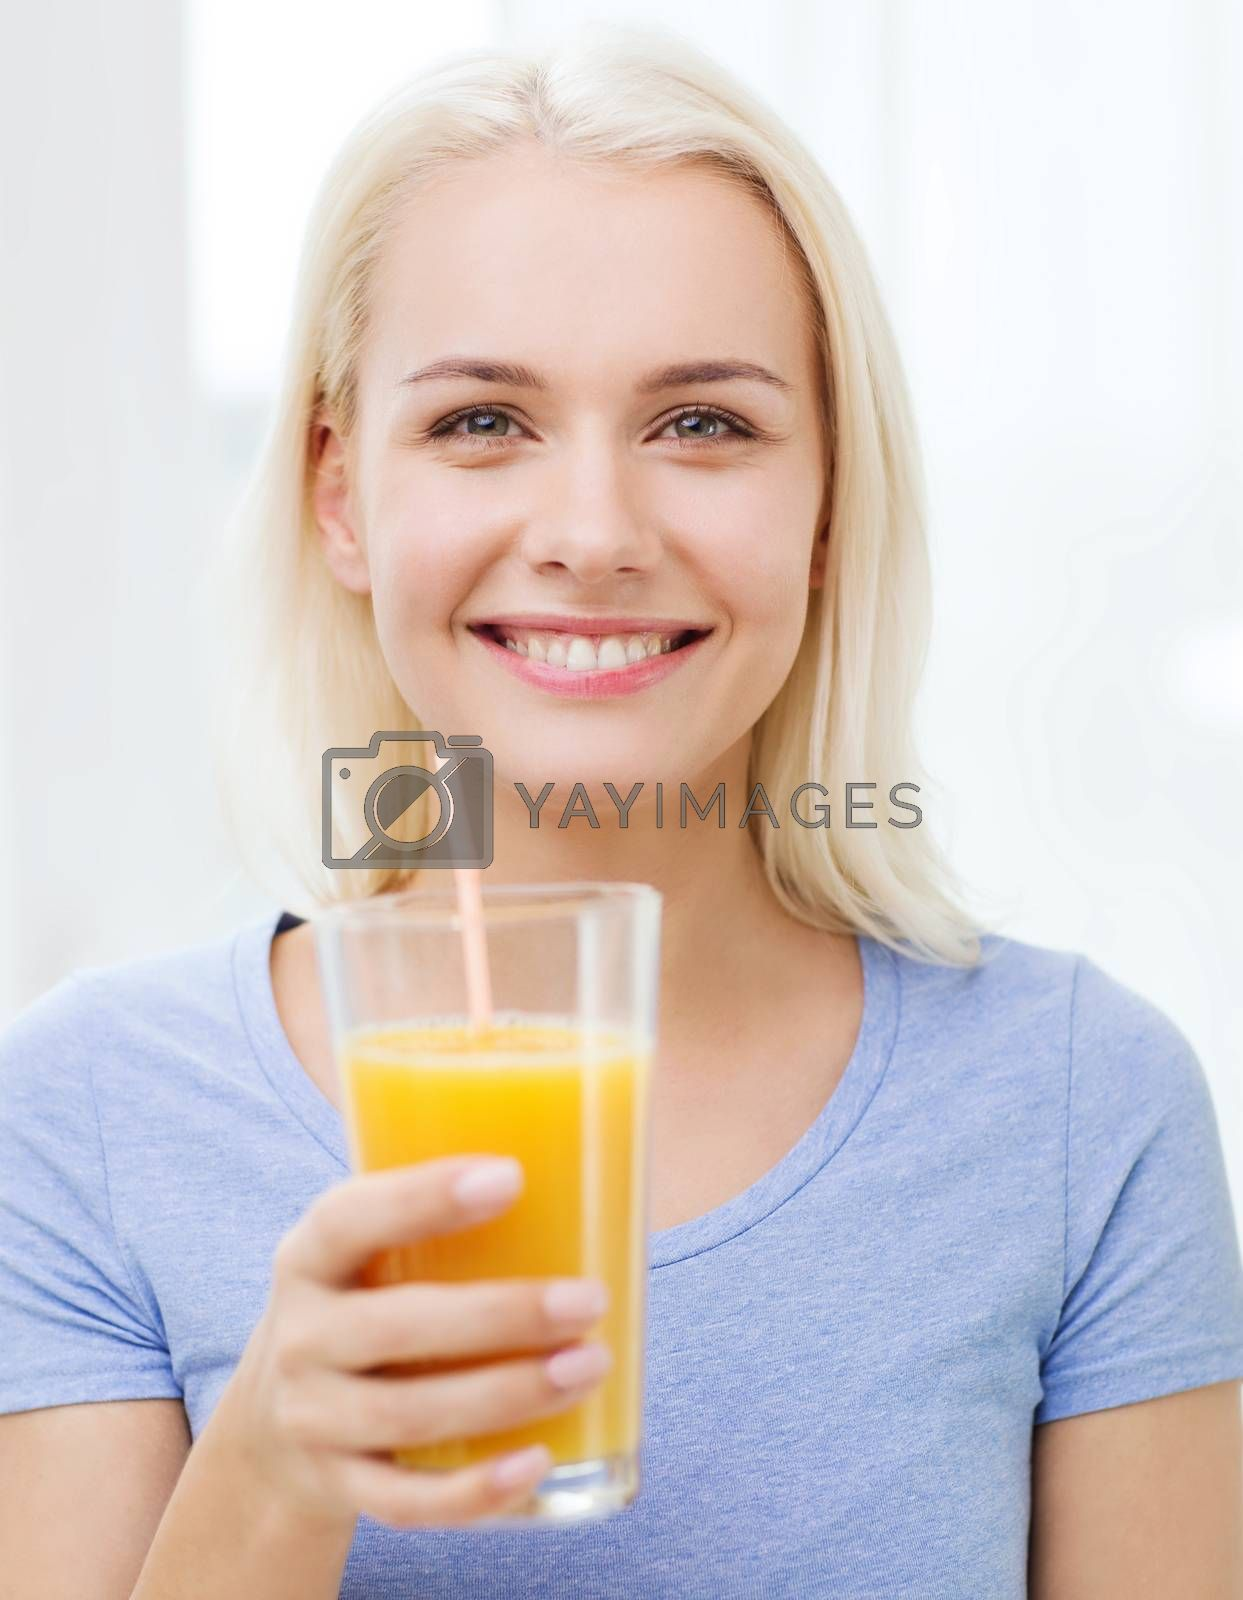 healthy eating, vegetarian food, diet, detox and people concept - smiling woman drinking orange juice or shake from glass at home